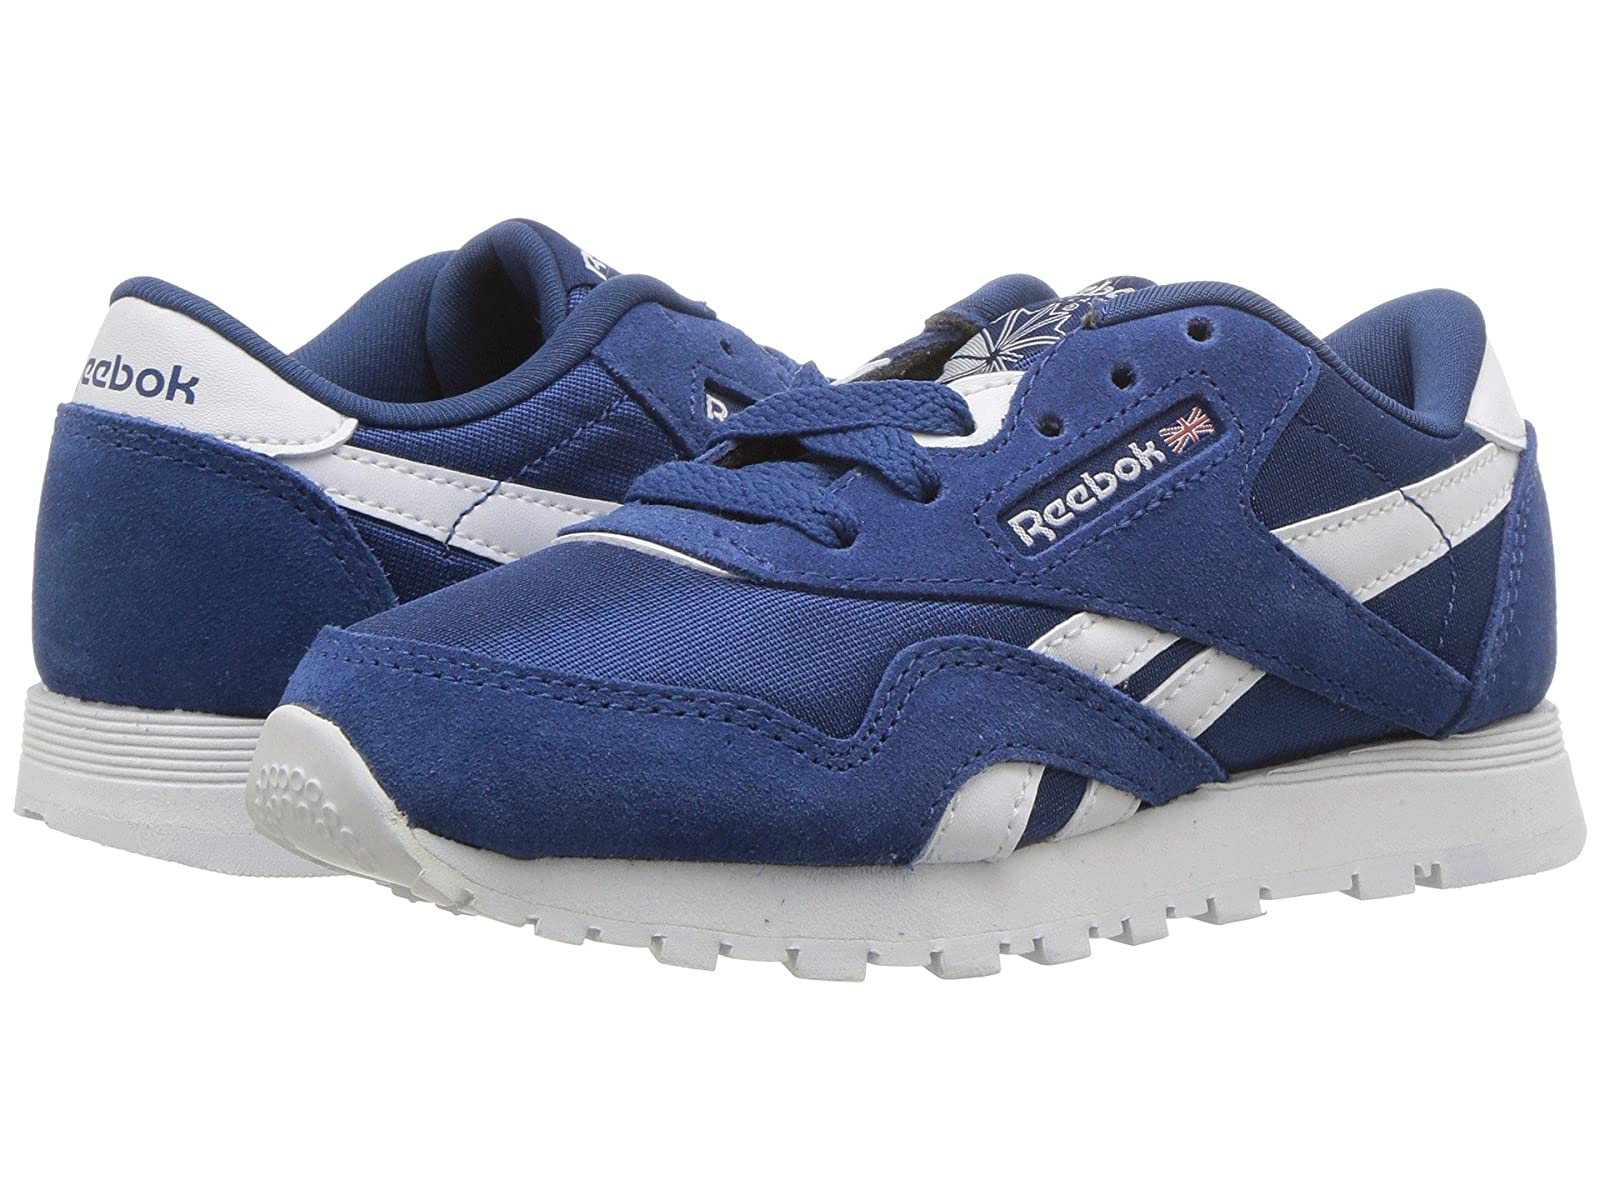 Reebok Kids Classic Nylon (Little Kid)Atmospheric grades have affordable shoes